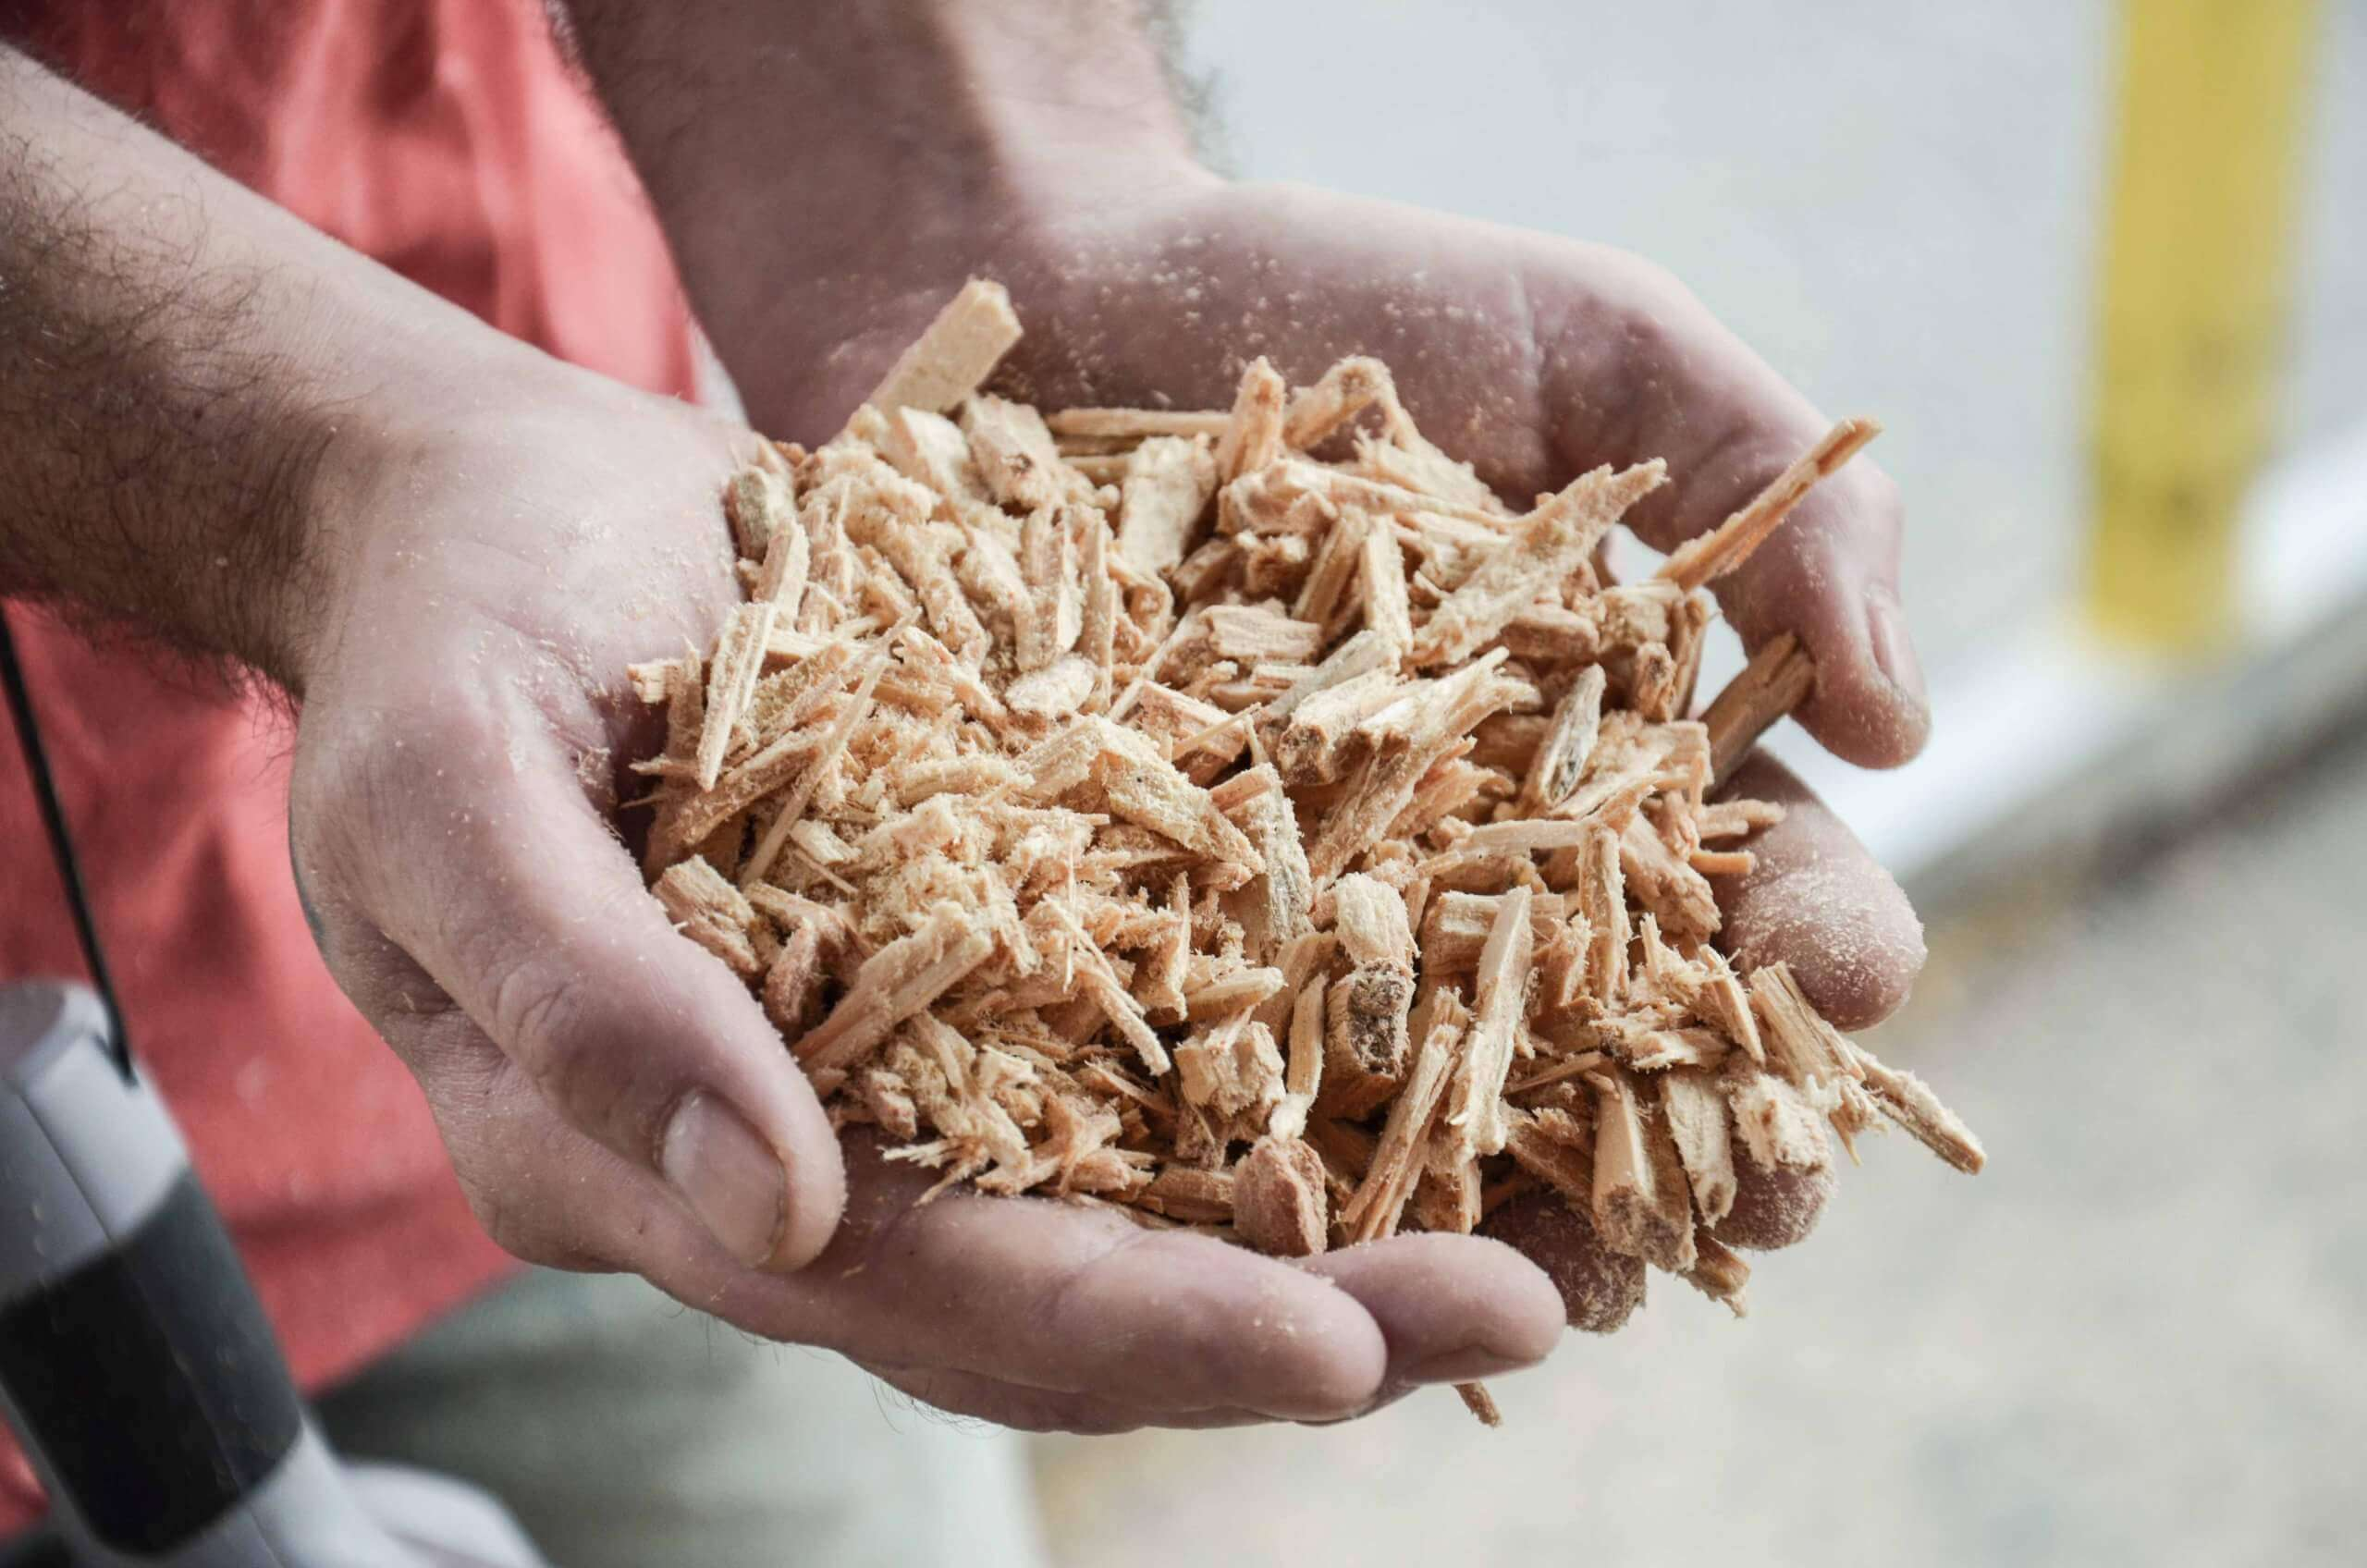 Wood chips are picked up with hands